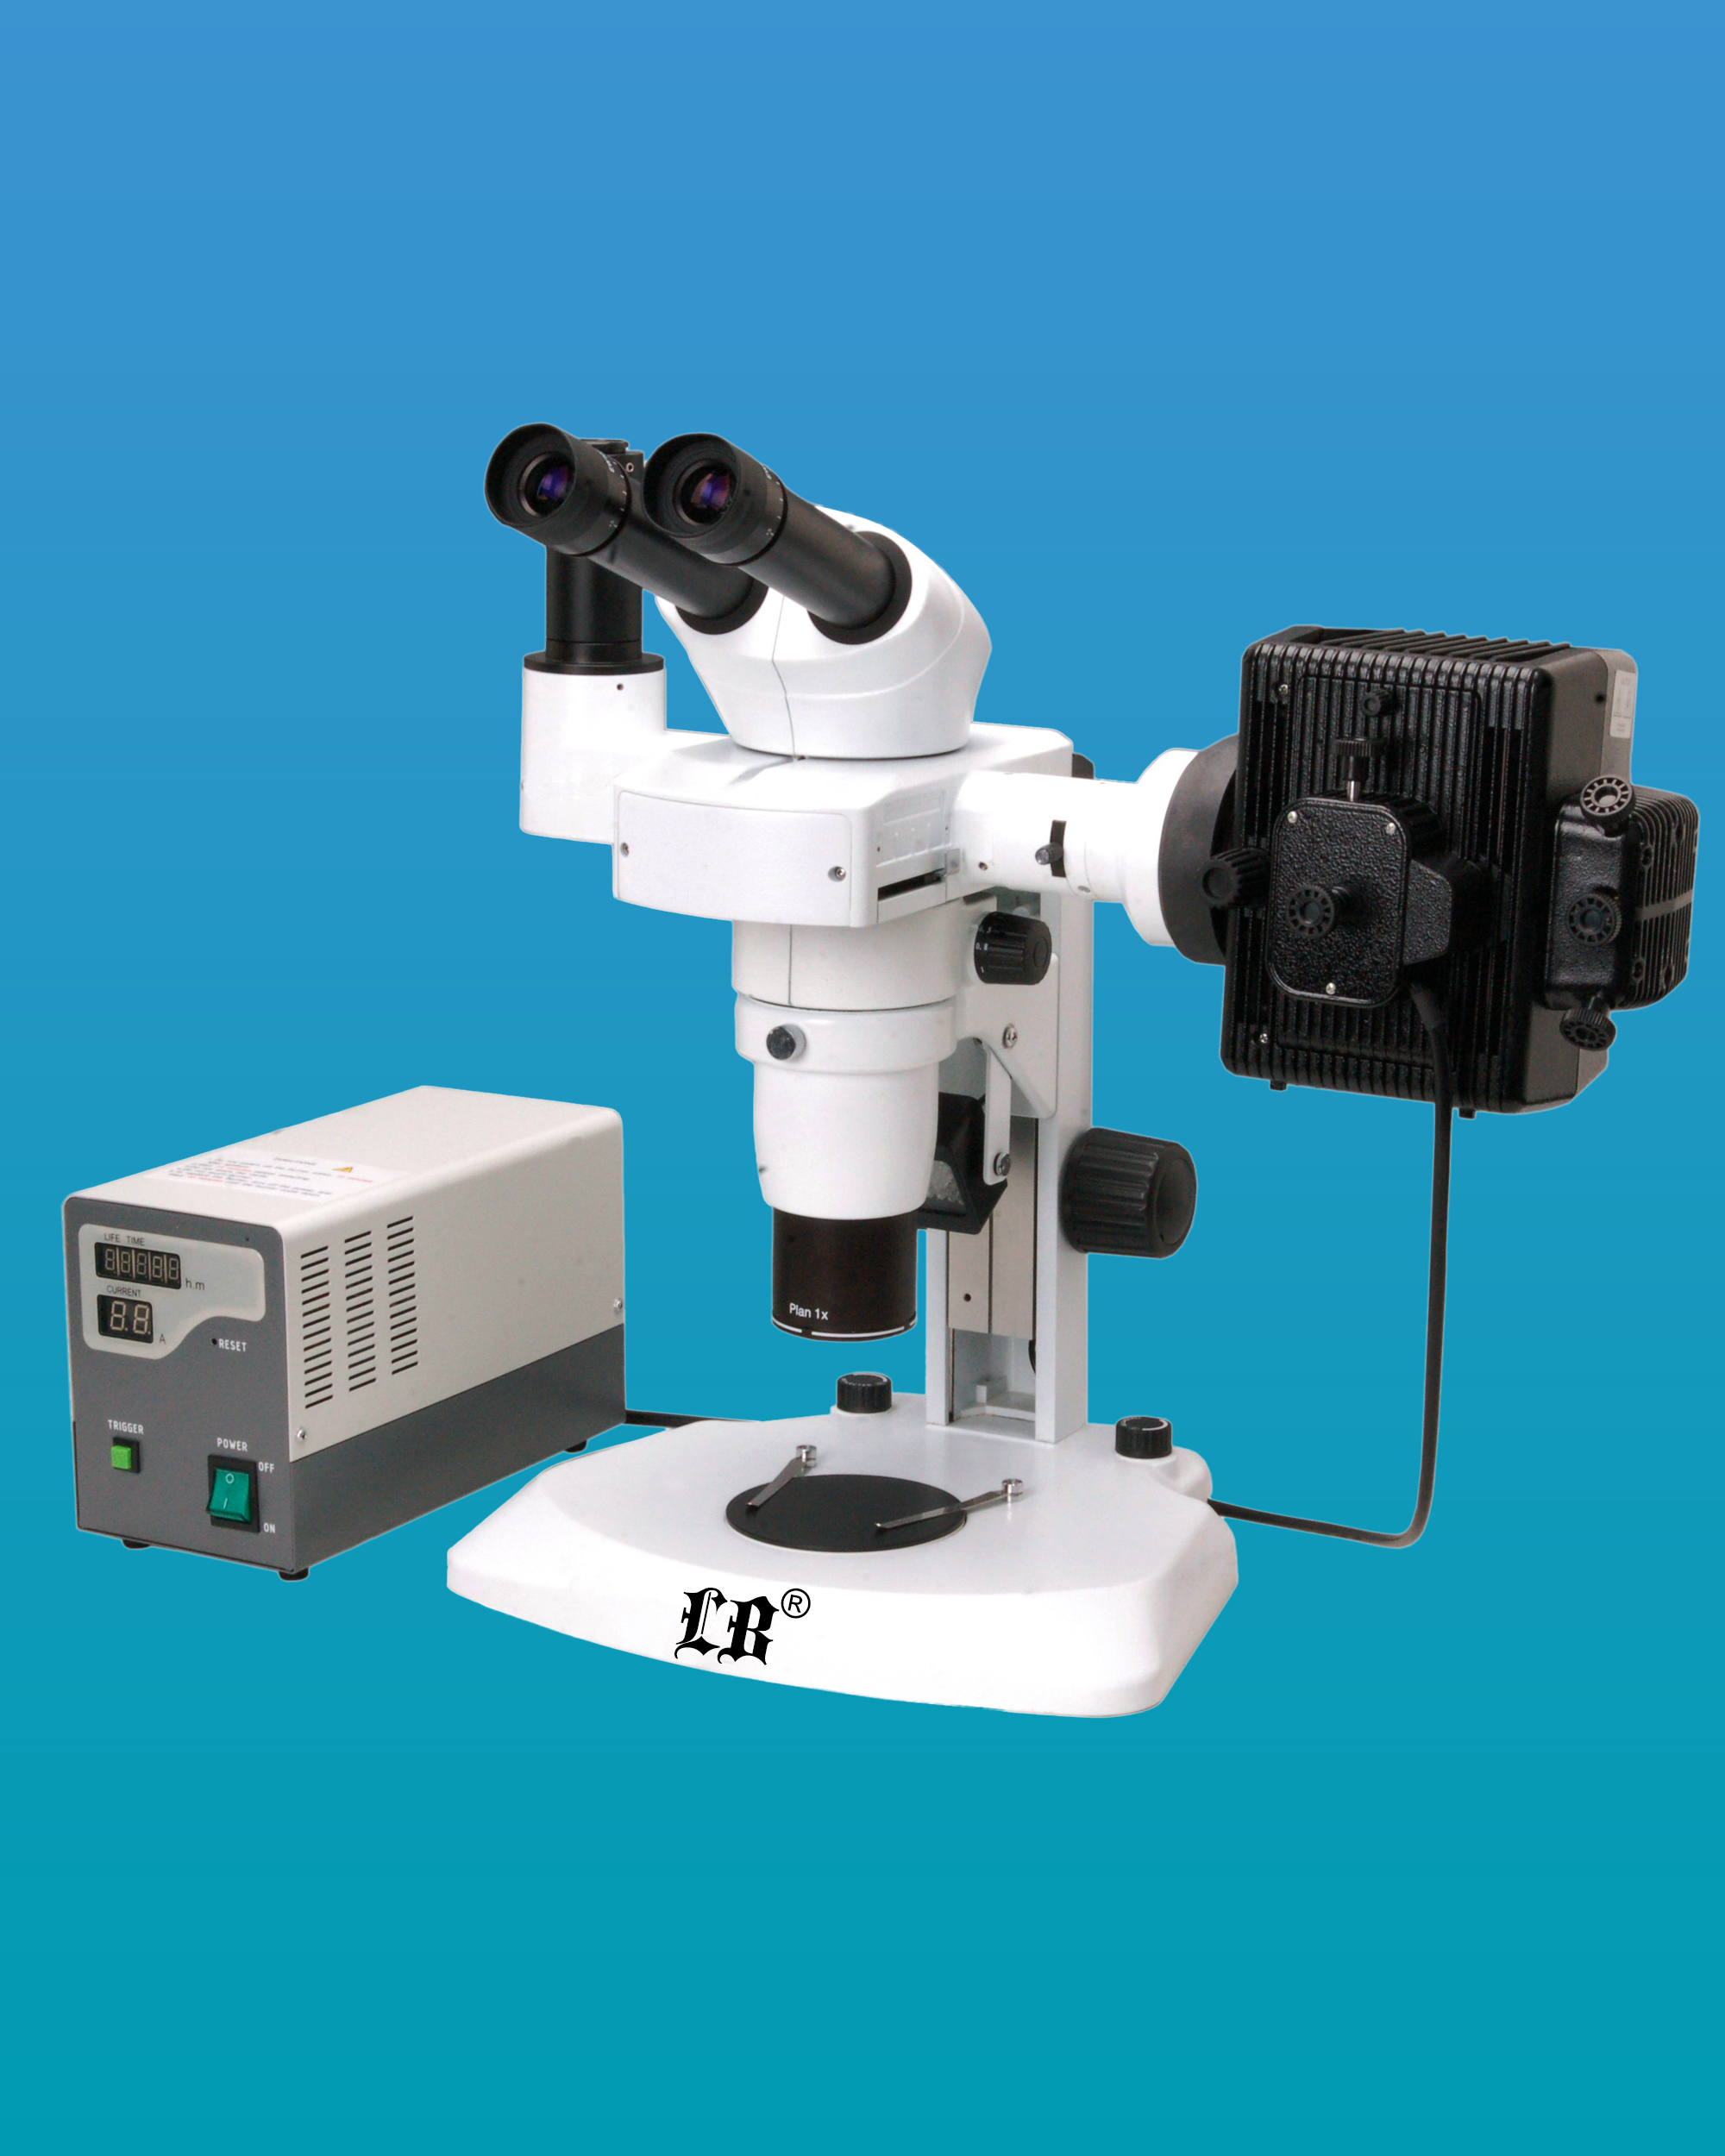 [LB-369] Binocular Zoom Fluorescent Stereo Microscope w/ Infinite Parallel Zoom Optical System & LED Illumination